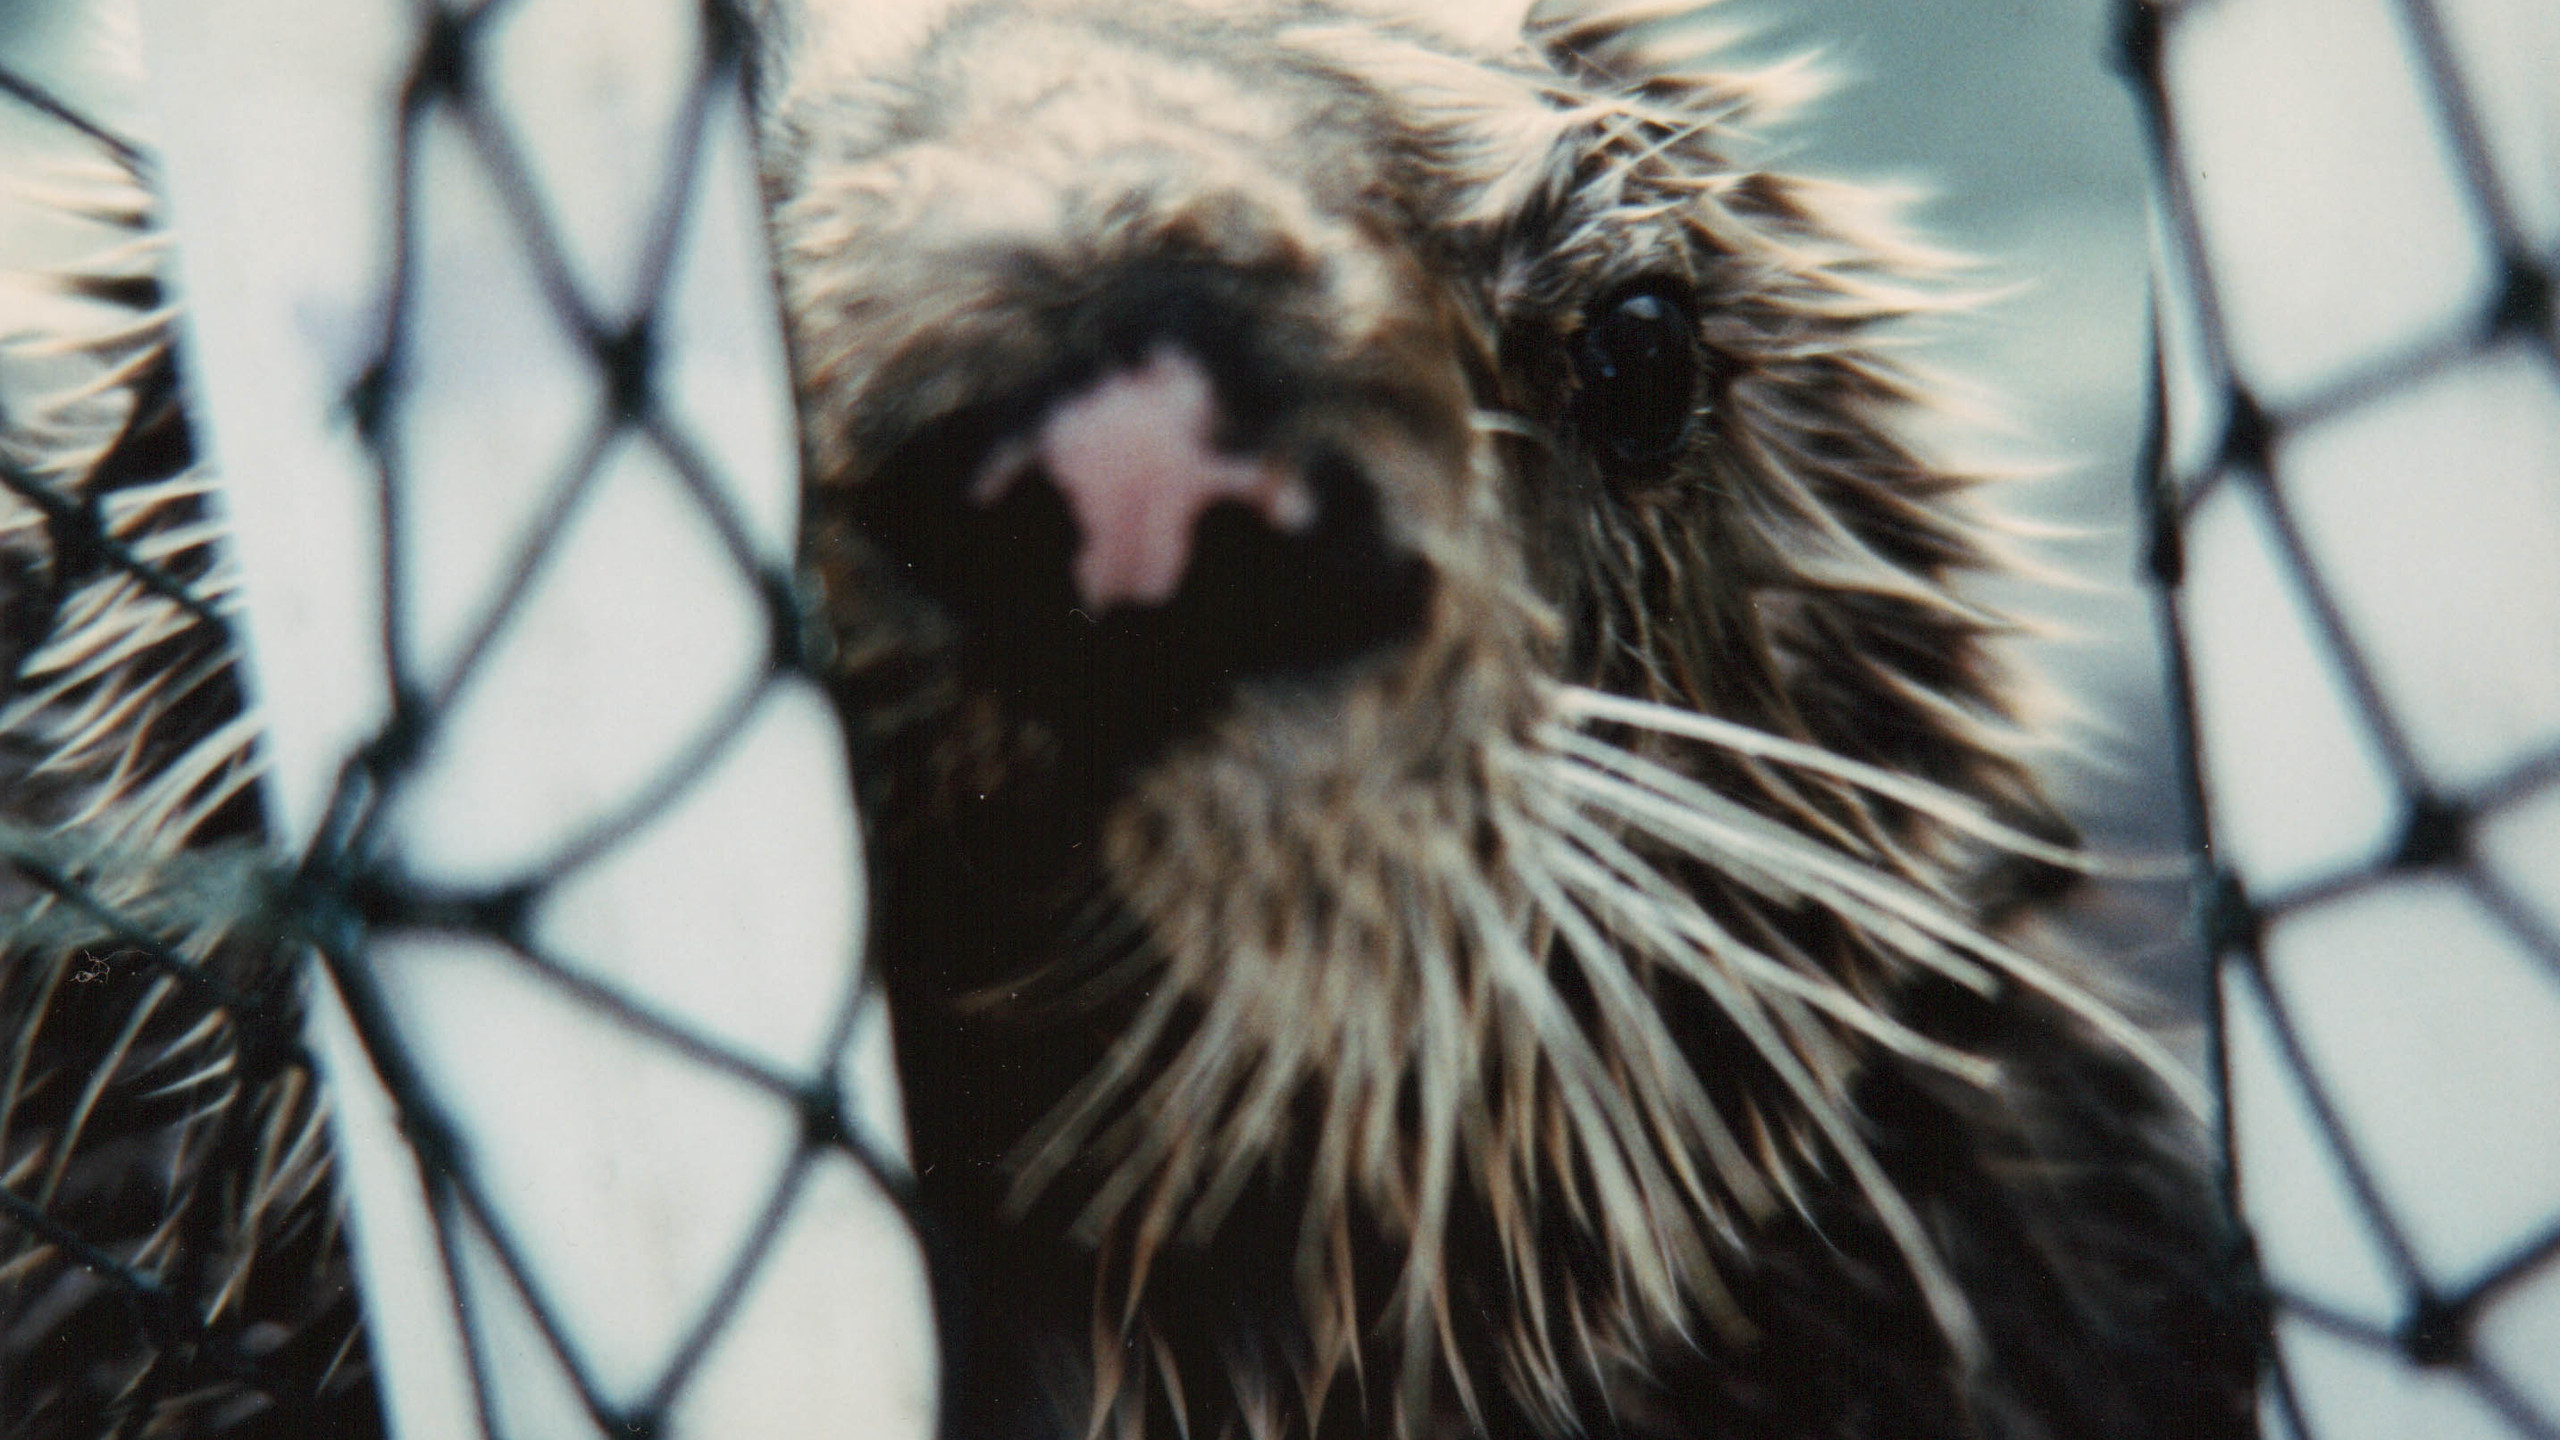 An oiled otter looks out of an enclosed pool.